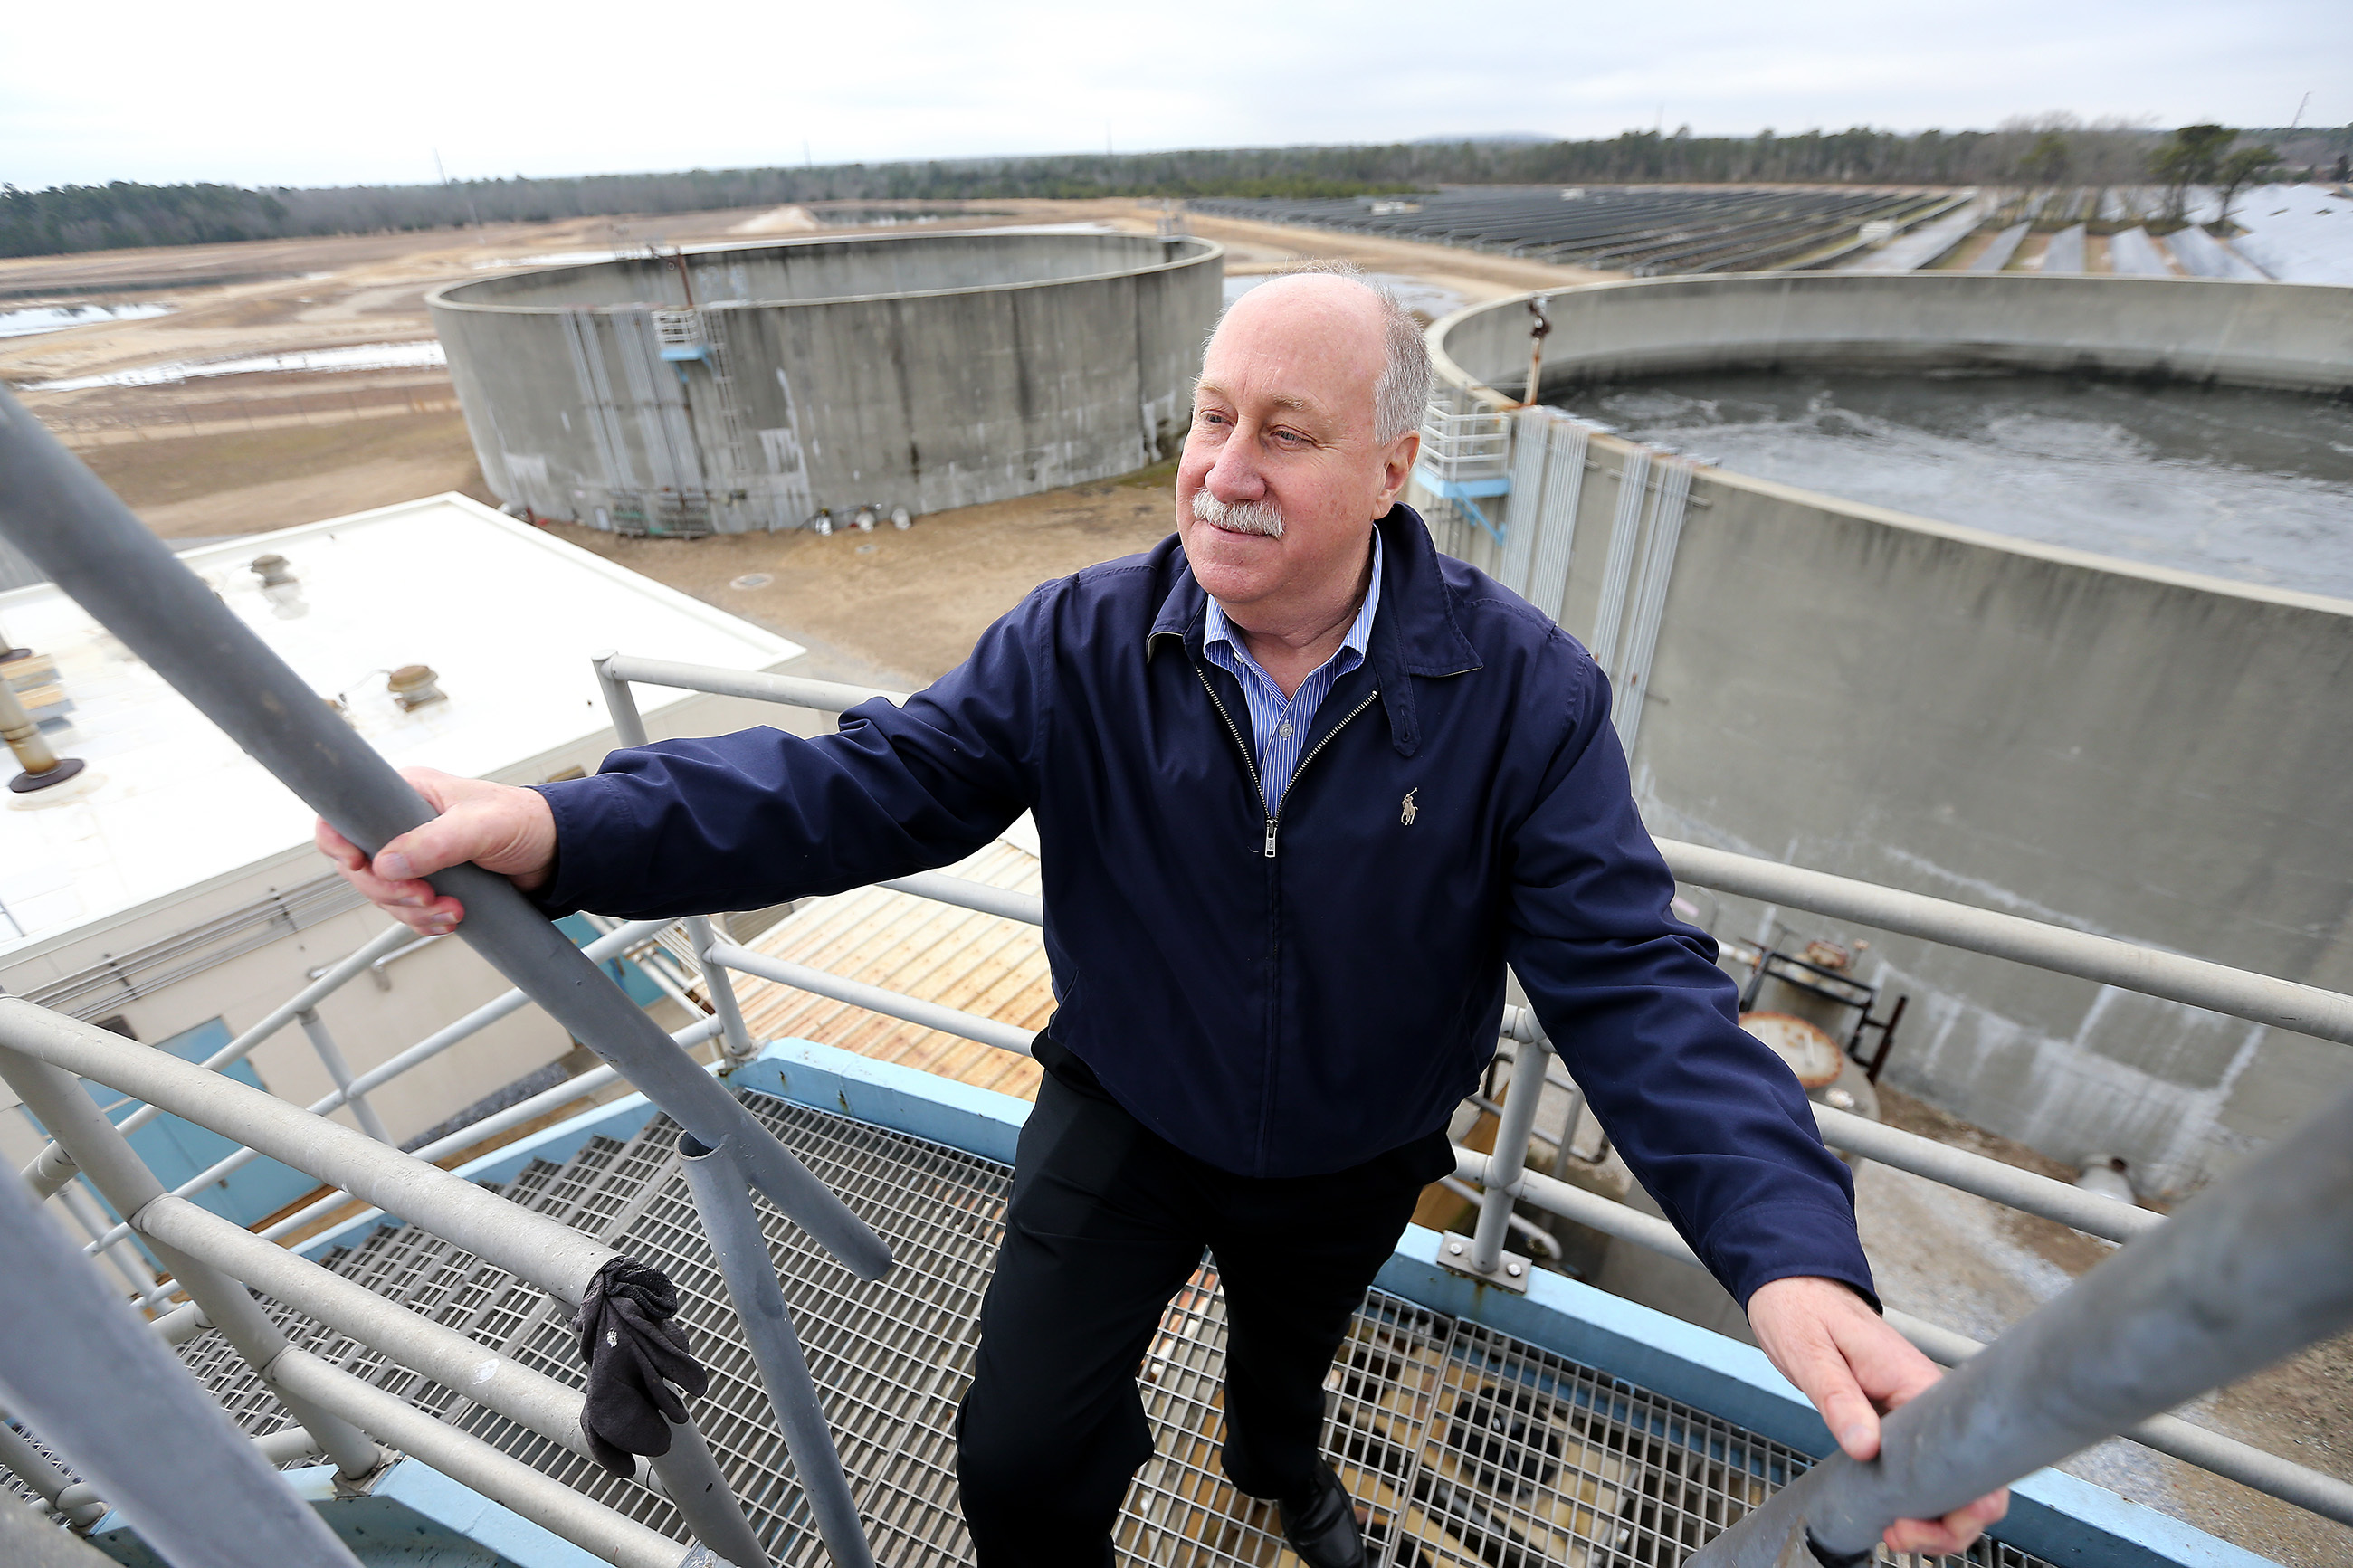 Dennis Palmer, executive director, looks over one of the sewage holding tanks at Landis Sewerage Authority in Vineland, NJ on February 7, 2019.